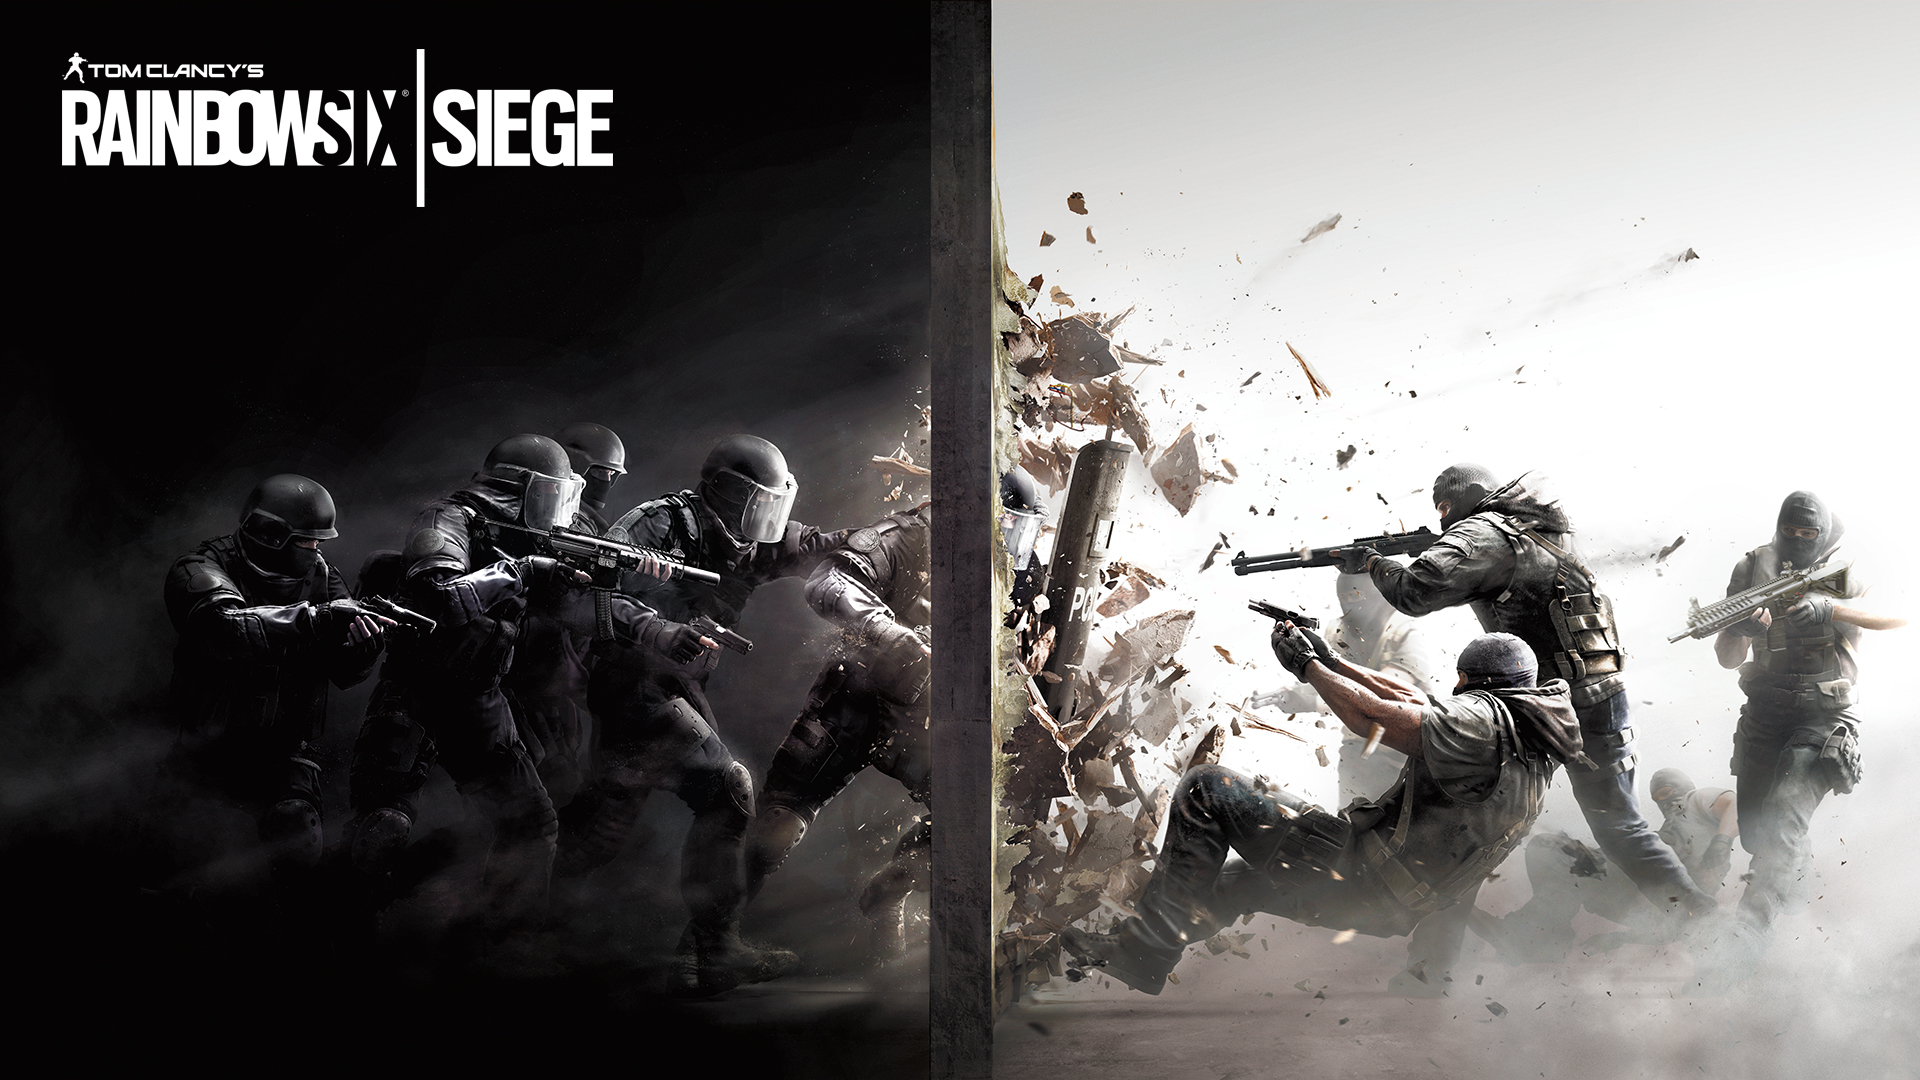 Rainbow Six Siege is holding a free play weekend later this month